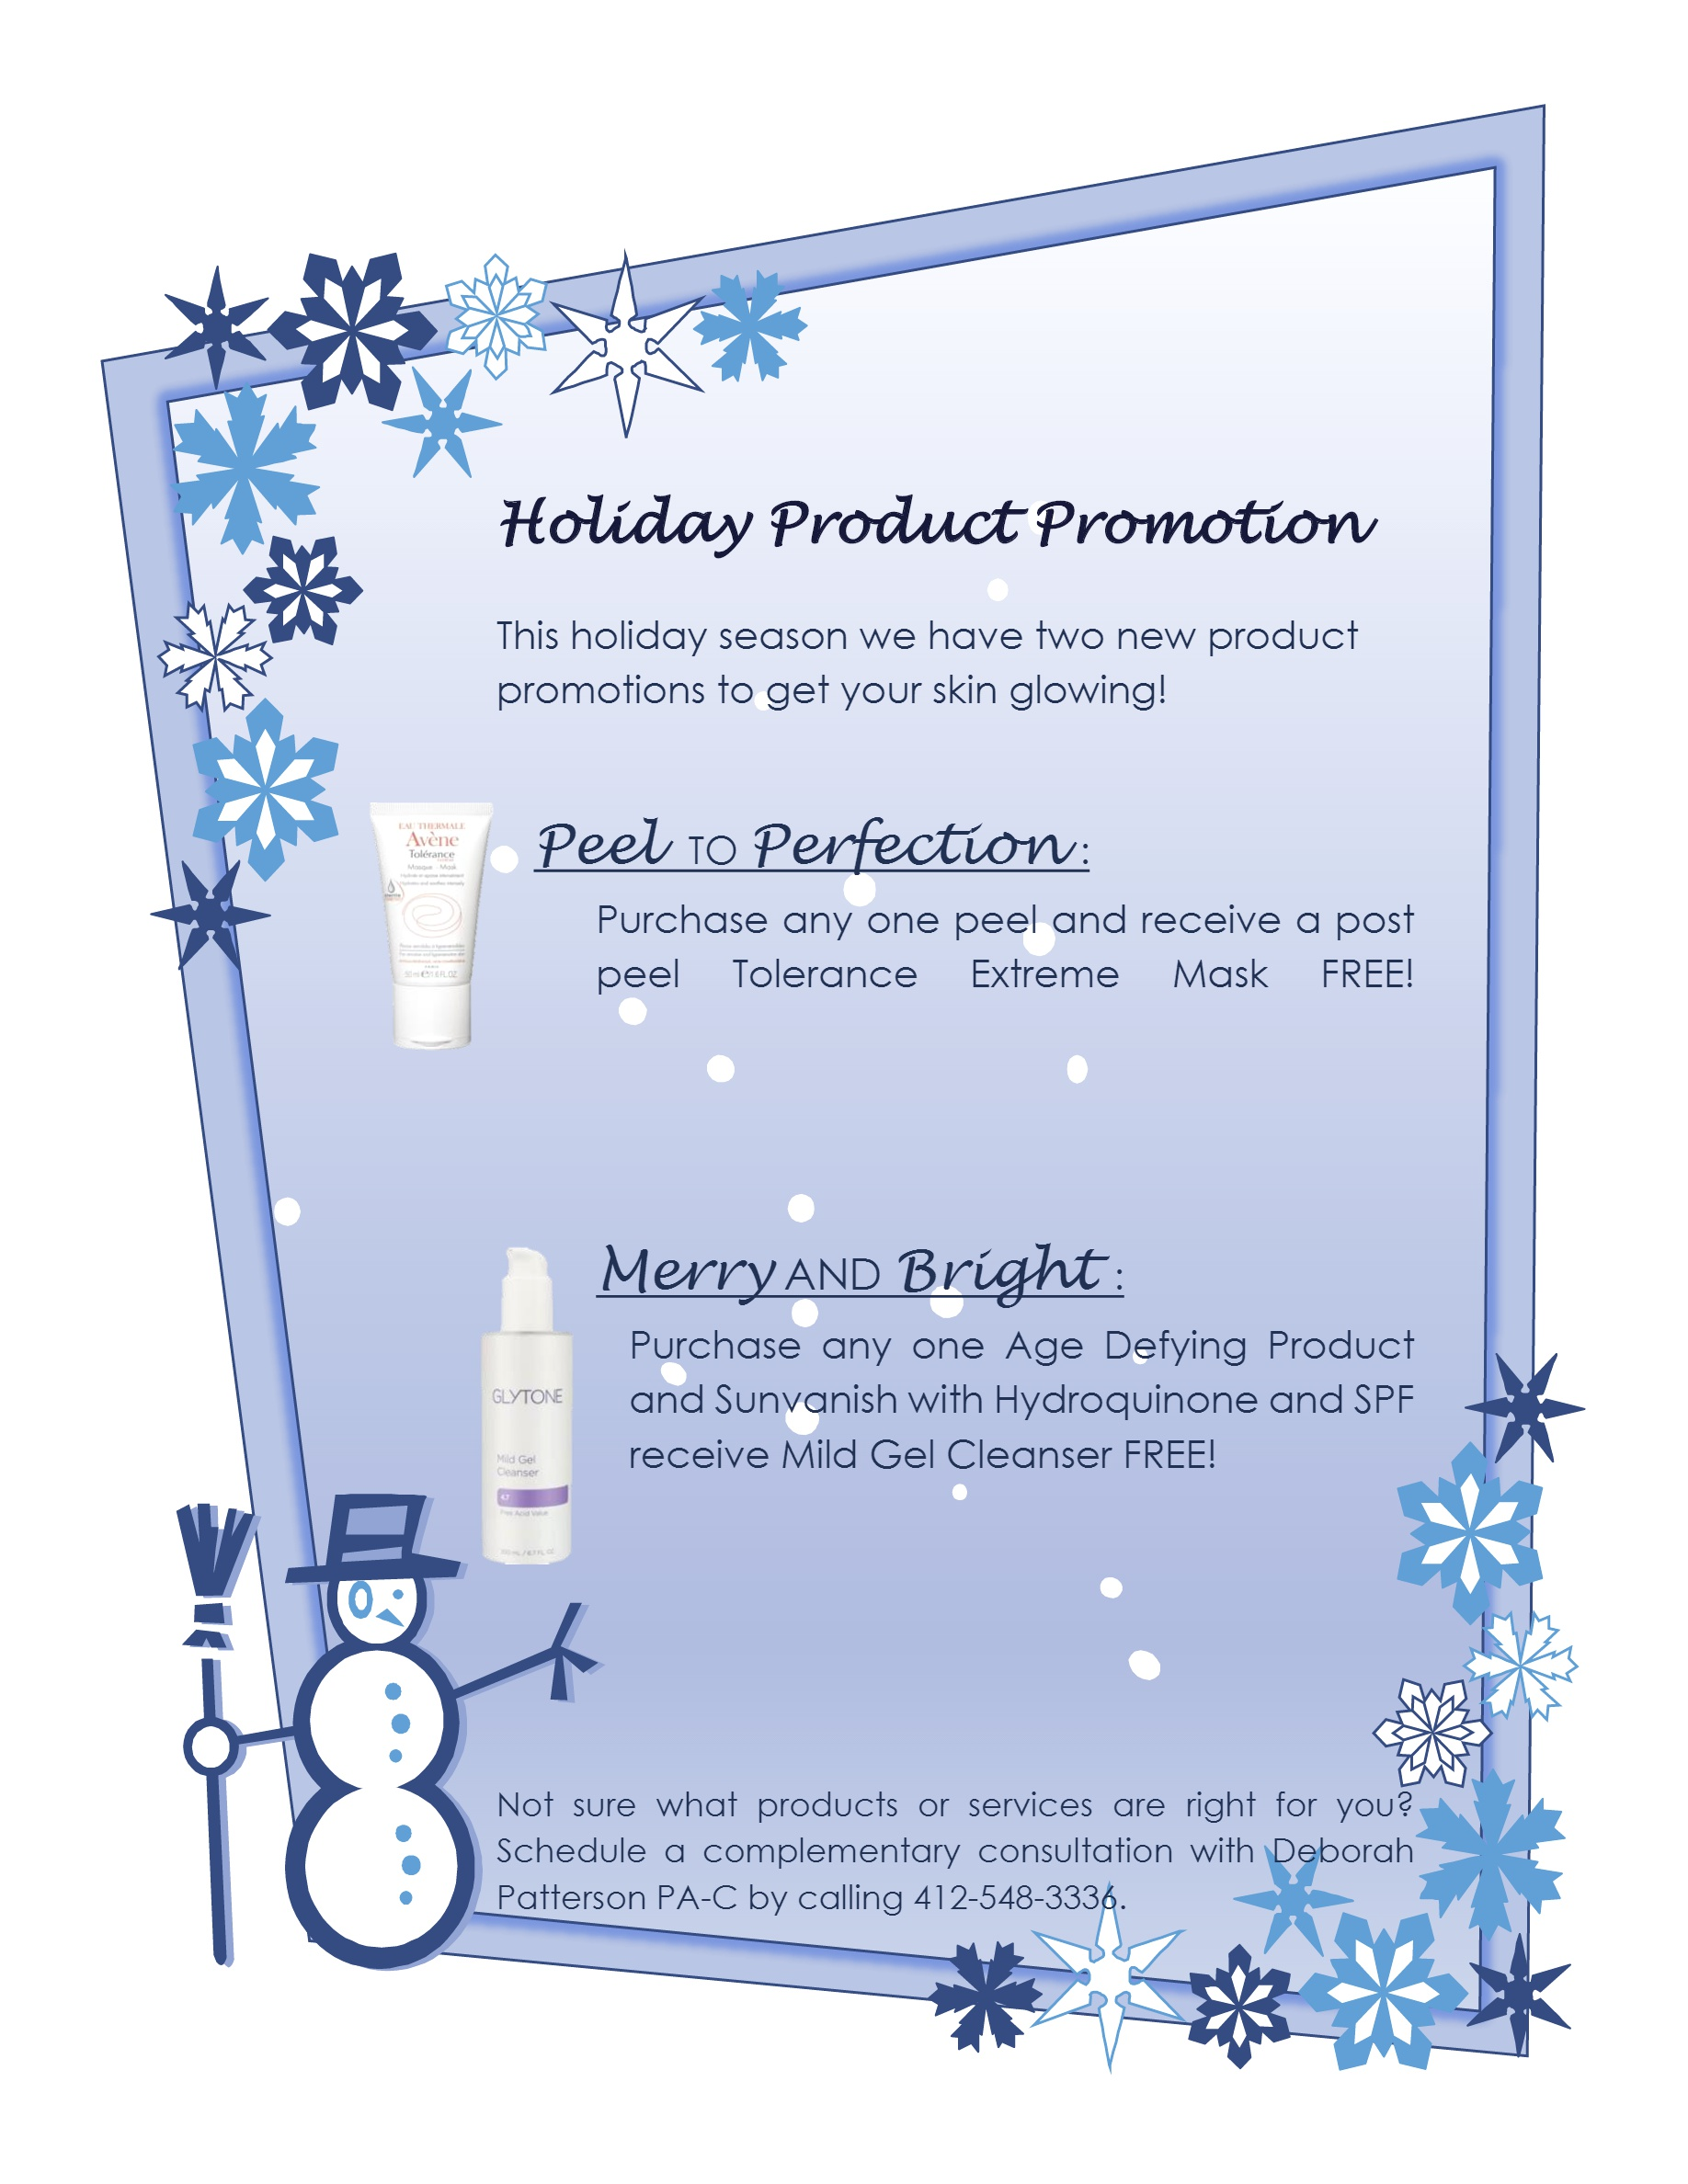 holiday_product_promotion.jpg